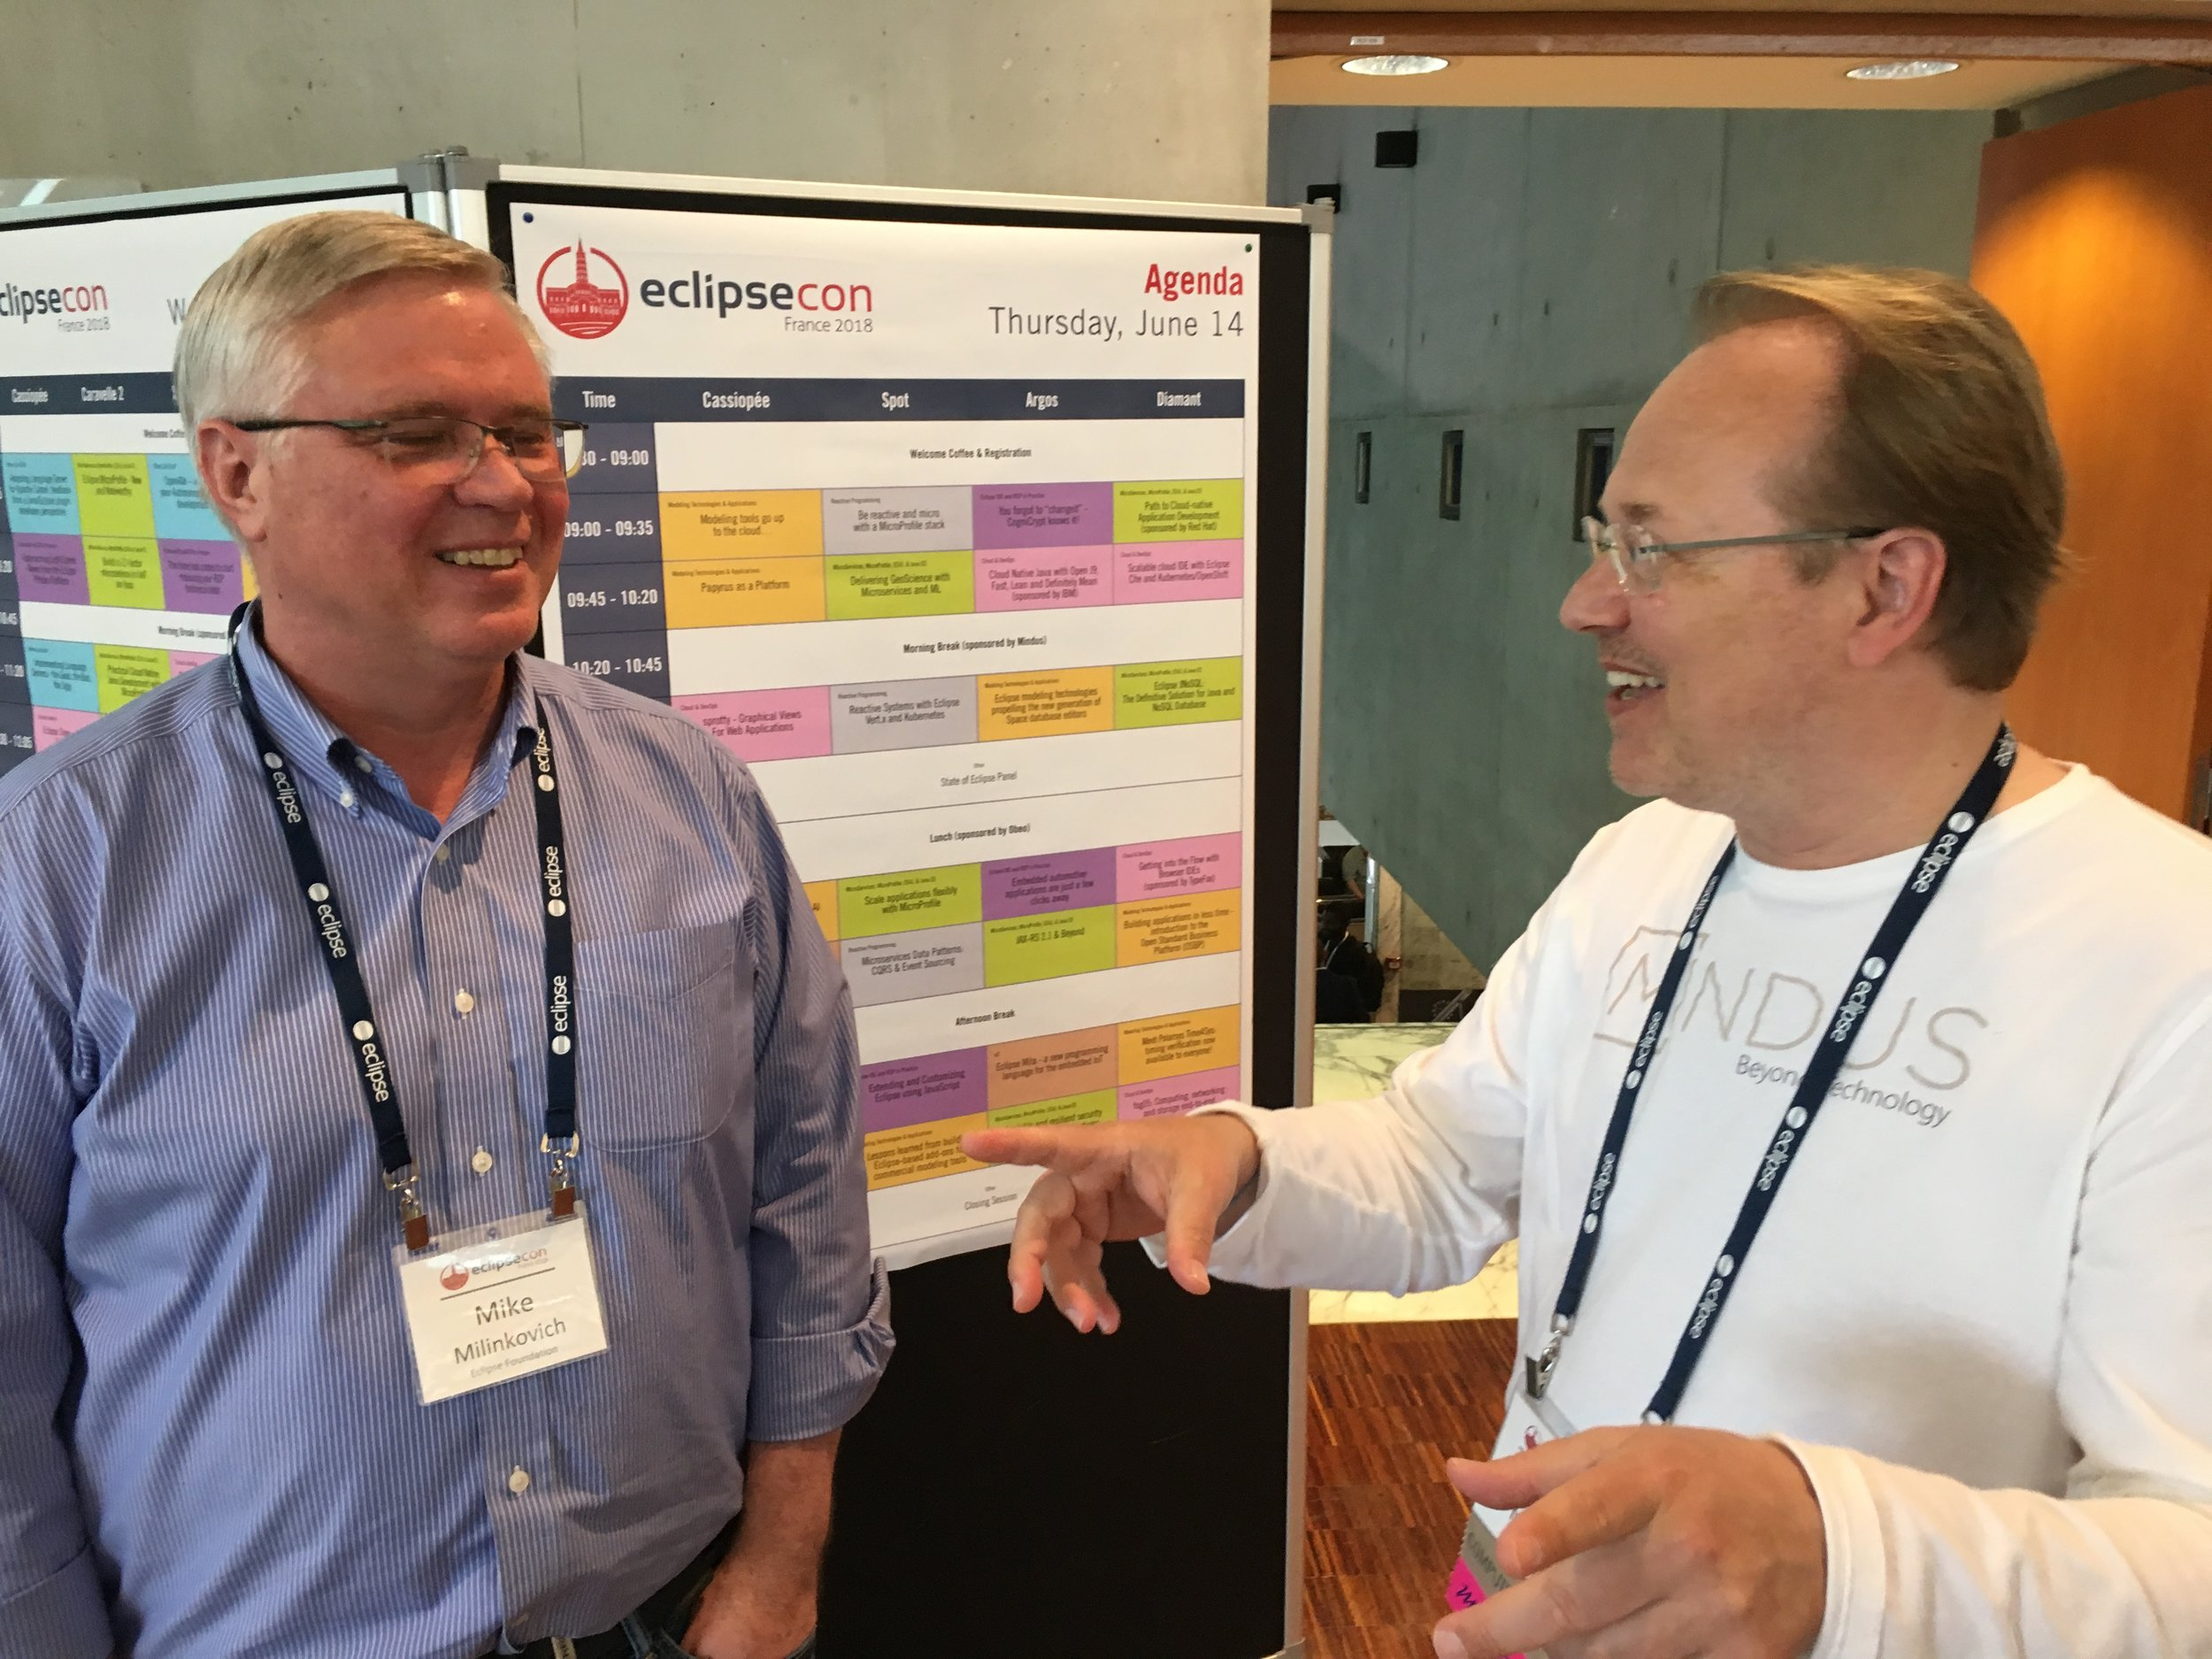 Executive Director at Eclipse Foundation Mike Milinkovich with Christopher Mindus discussing the EclipseCon event